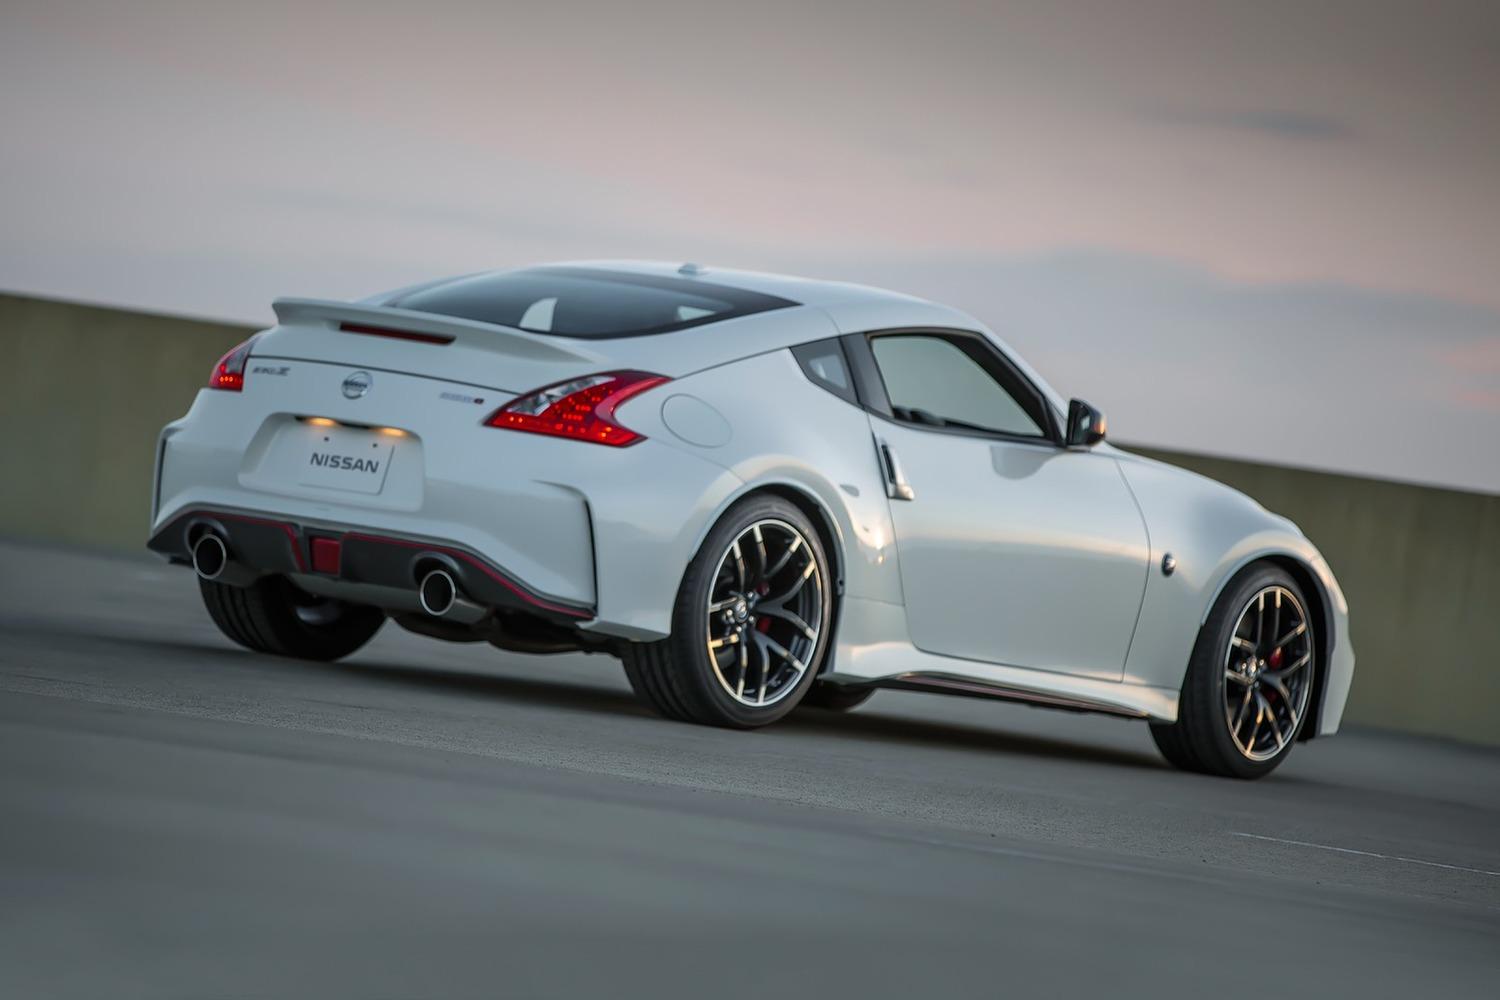 2018 Nissan 370z Nismo Tech Coupe Vehie